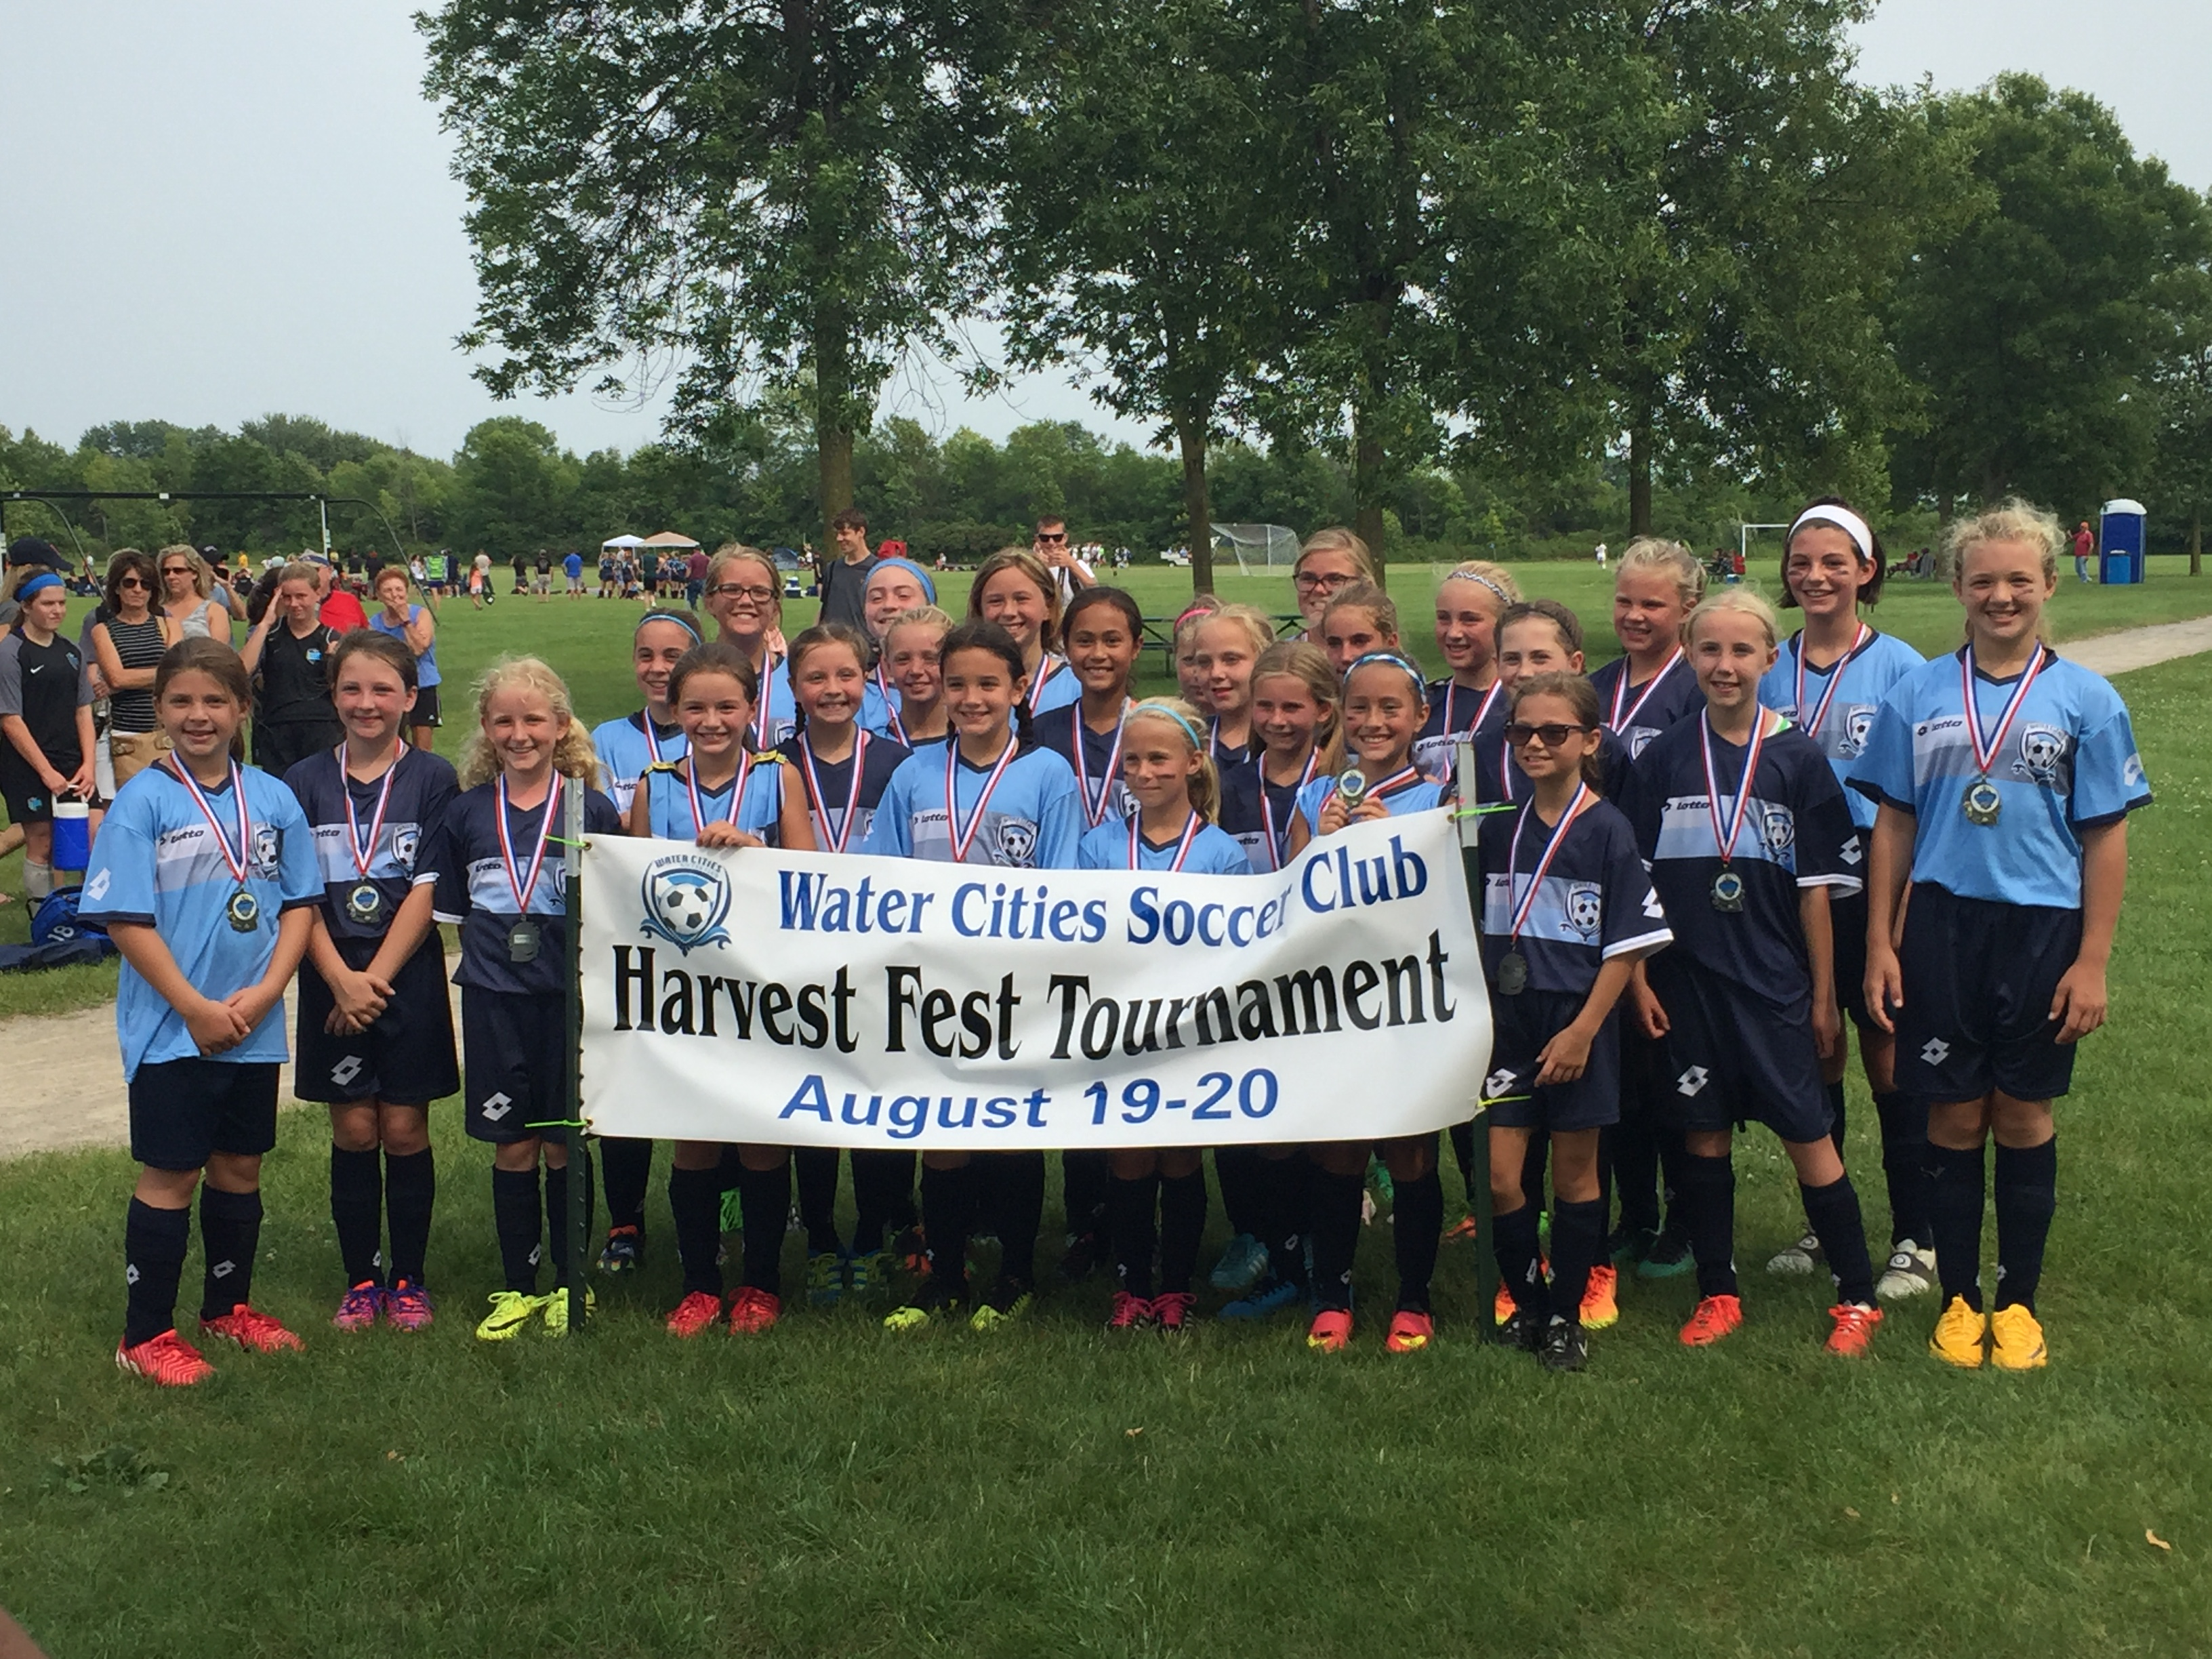 PAST WATER CITIES SOCCER TOURNAMENTS